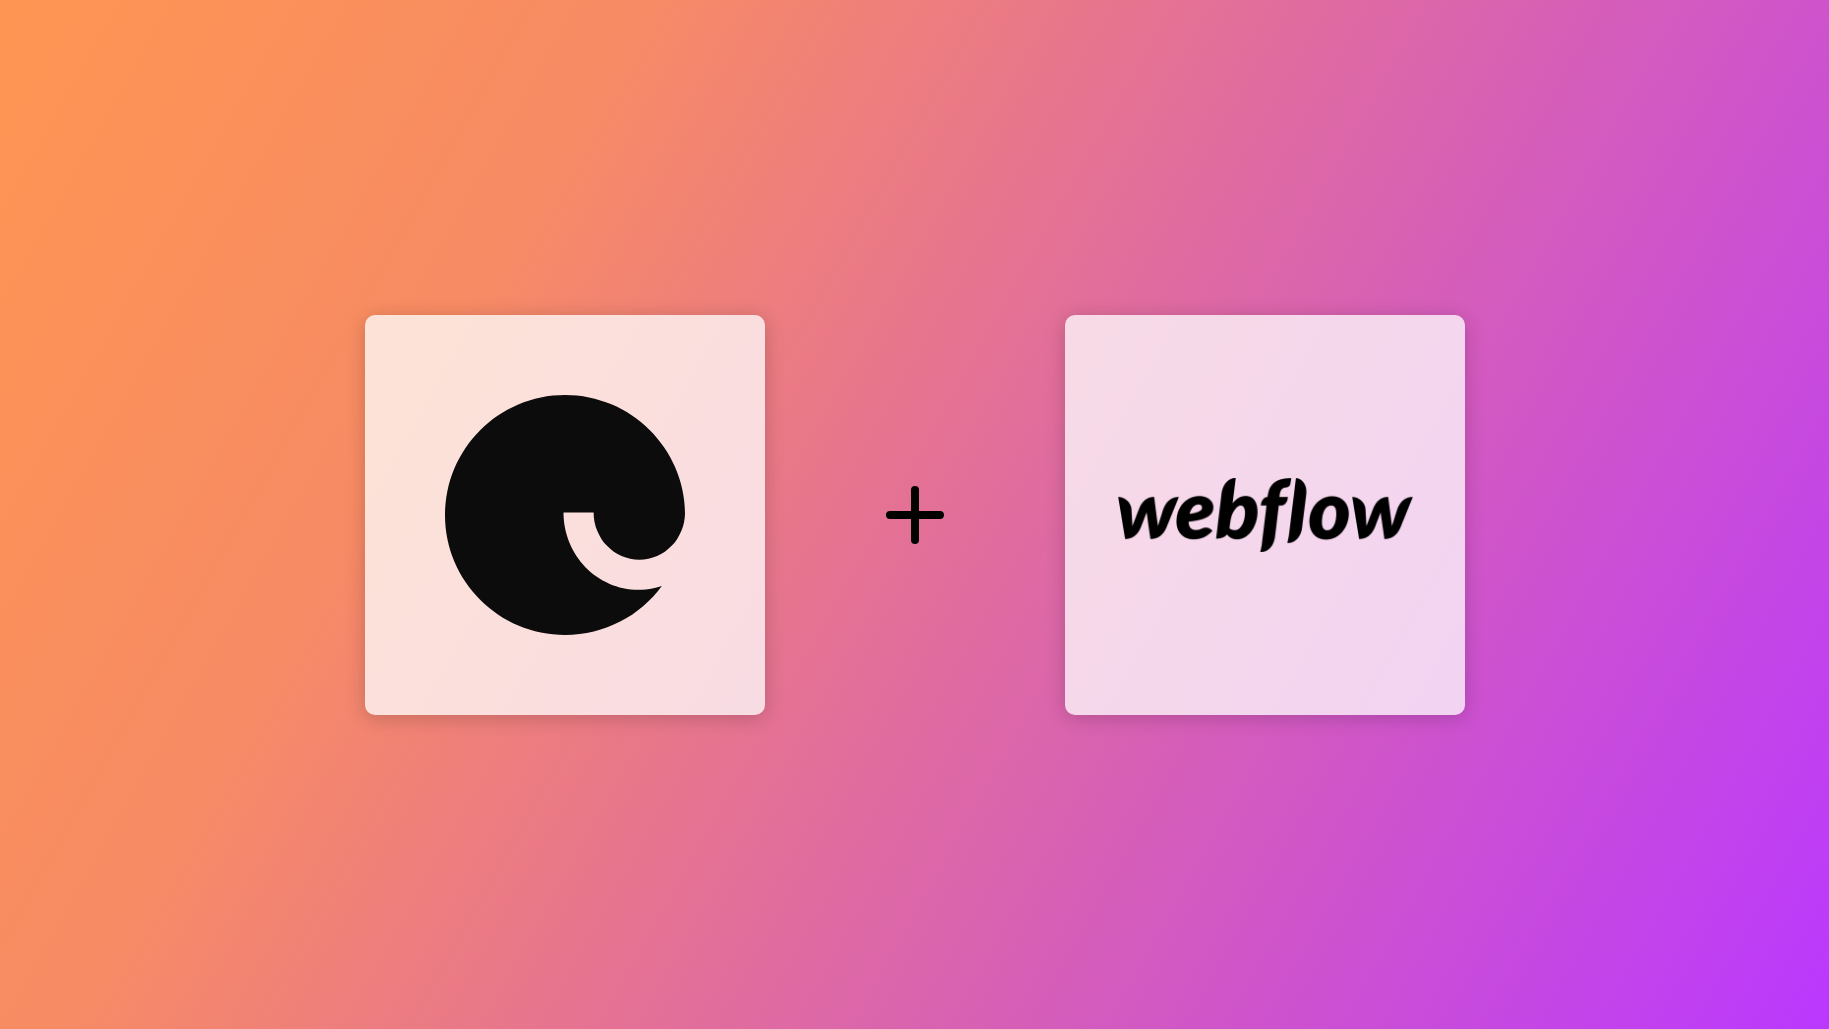 How to Install Emcee on a Webflow Website?